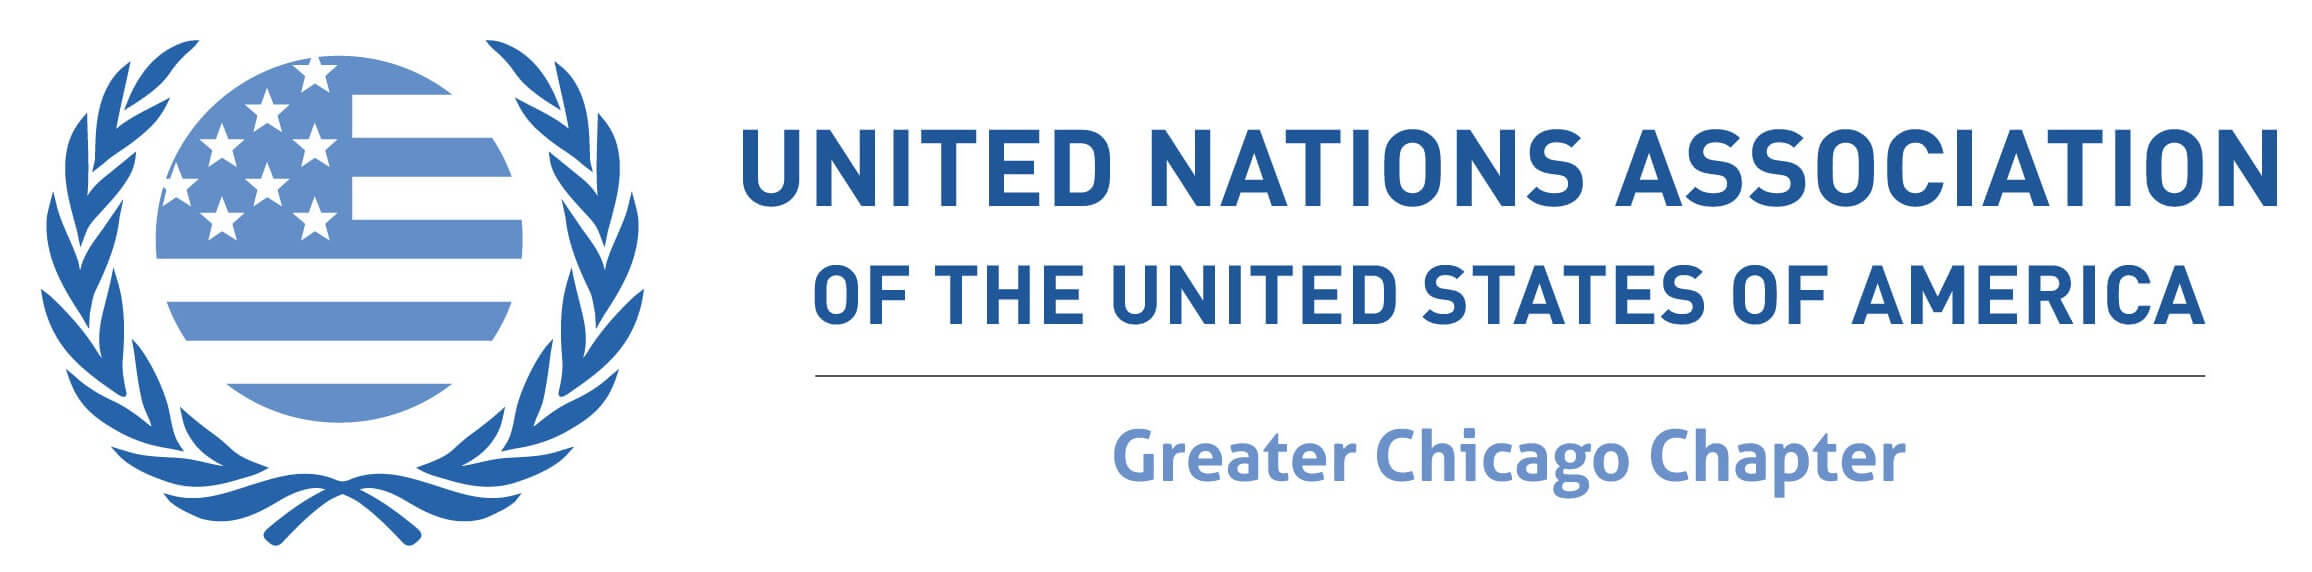 United Nations of Chicago